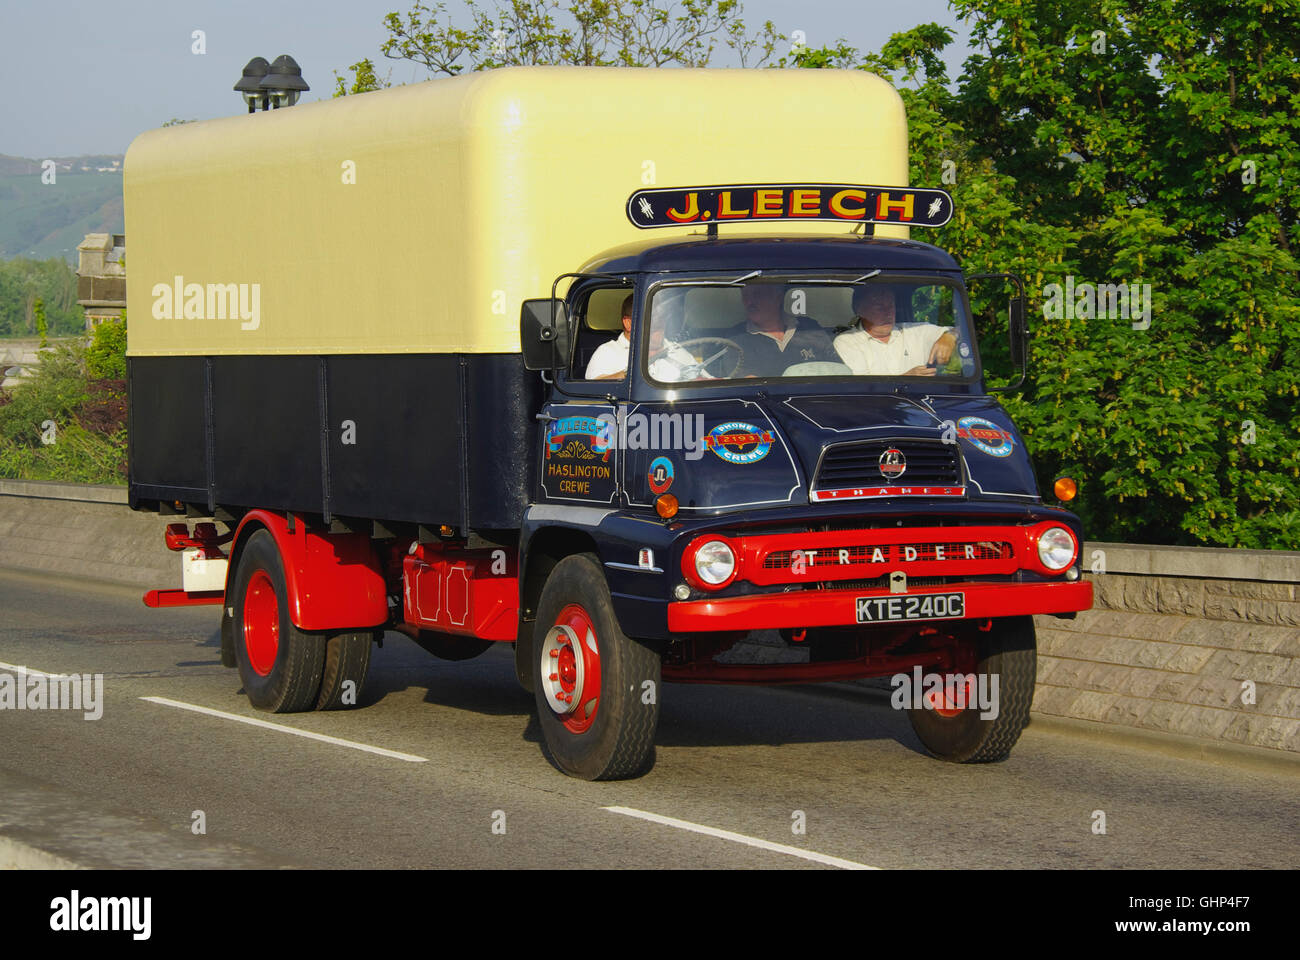 Thames Trader Vintage Lorry at Conwy, - Stock Image